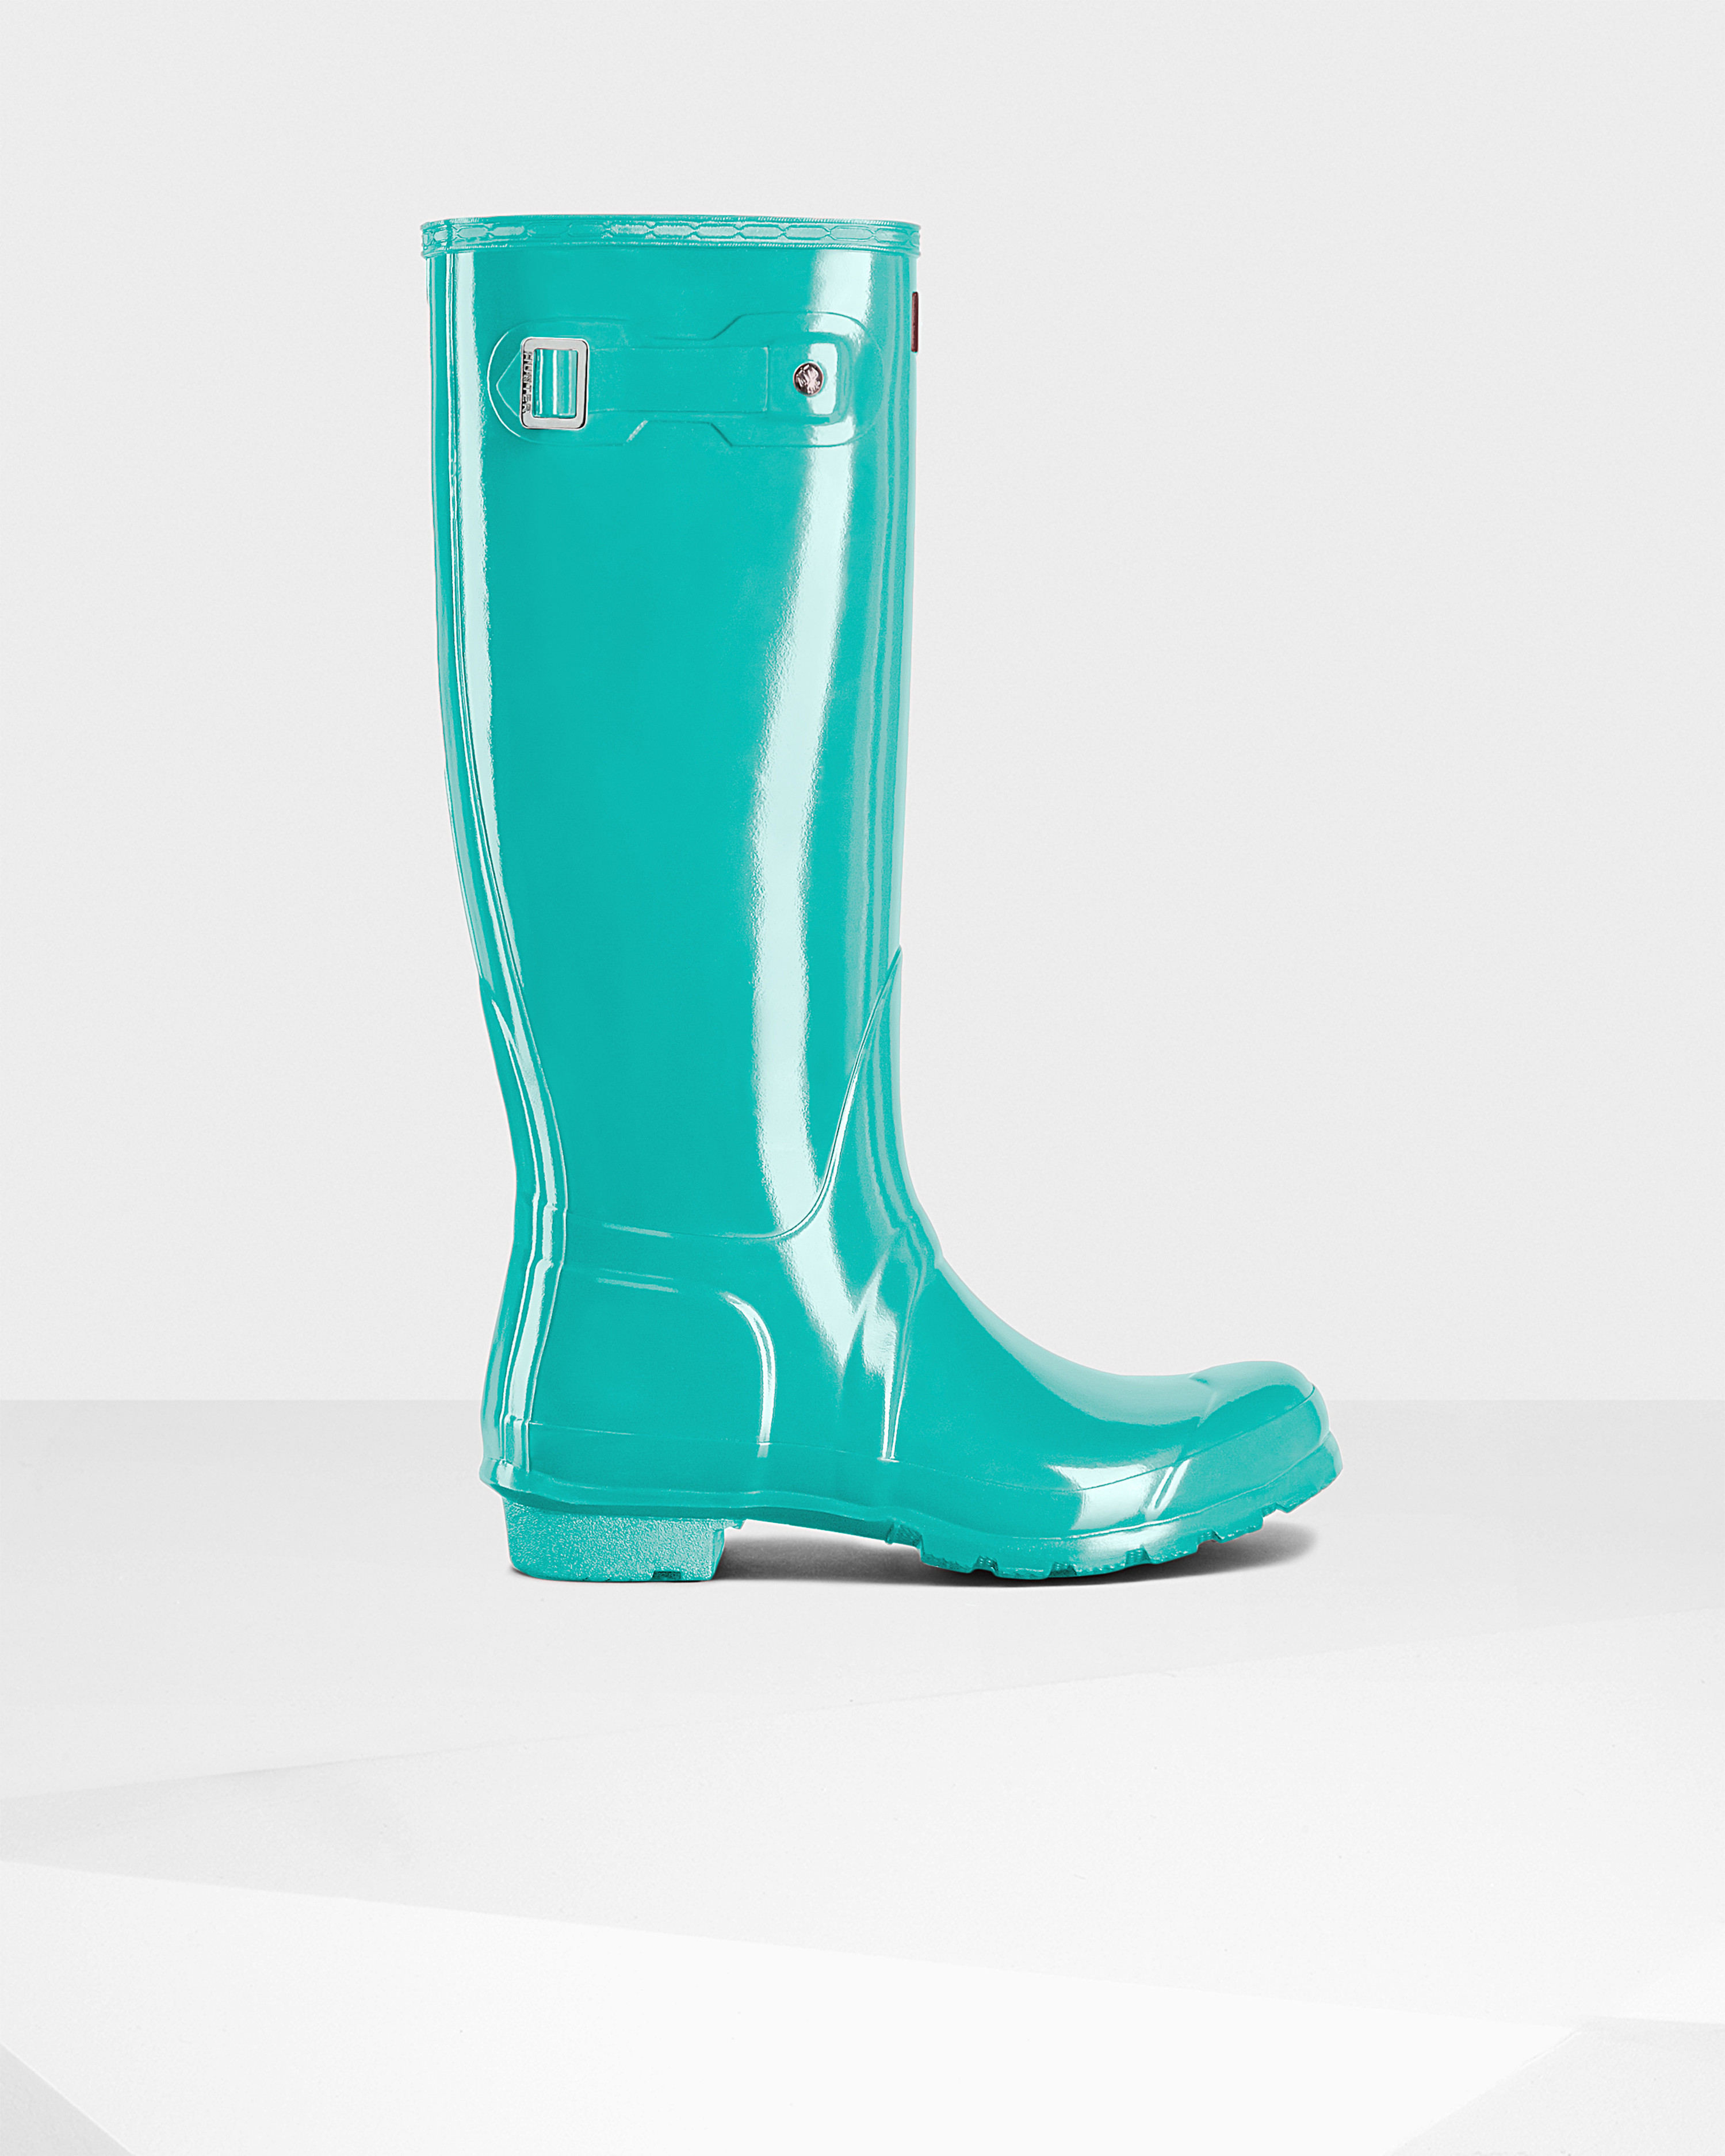 874f6194938a23 Lyst - HUNTER Women s Original Tall Gloss Rain Boots in Green